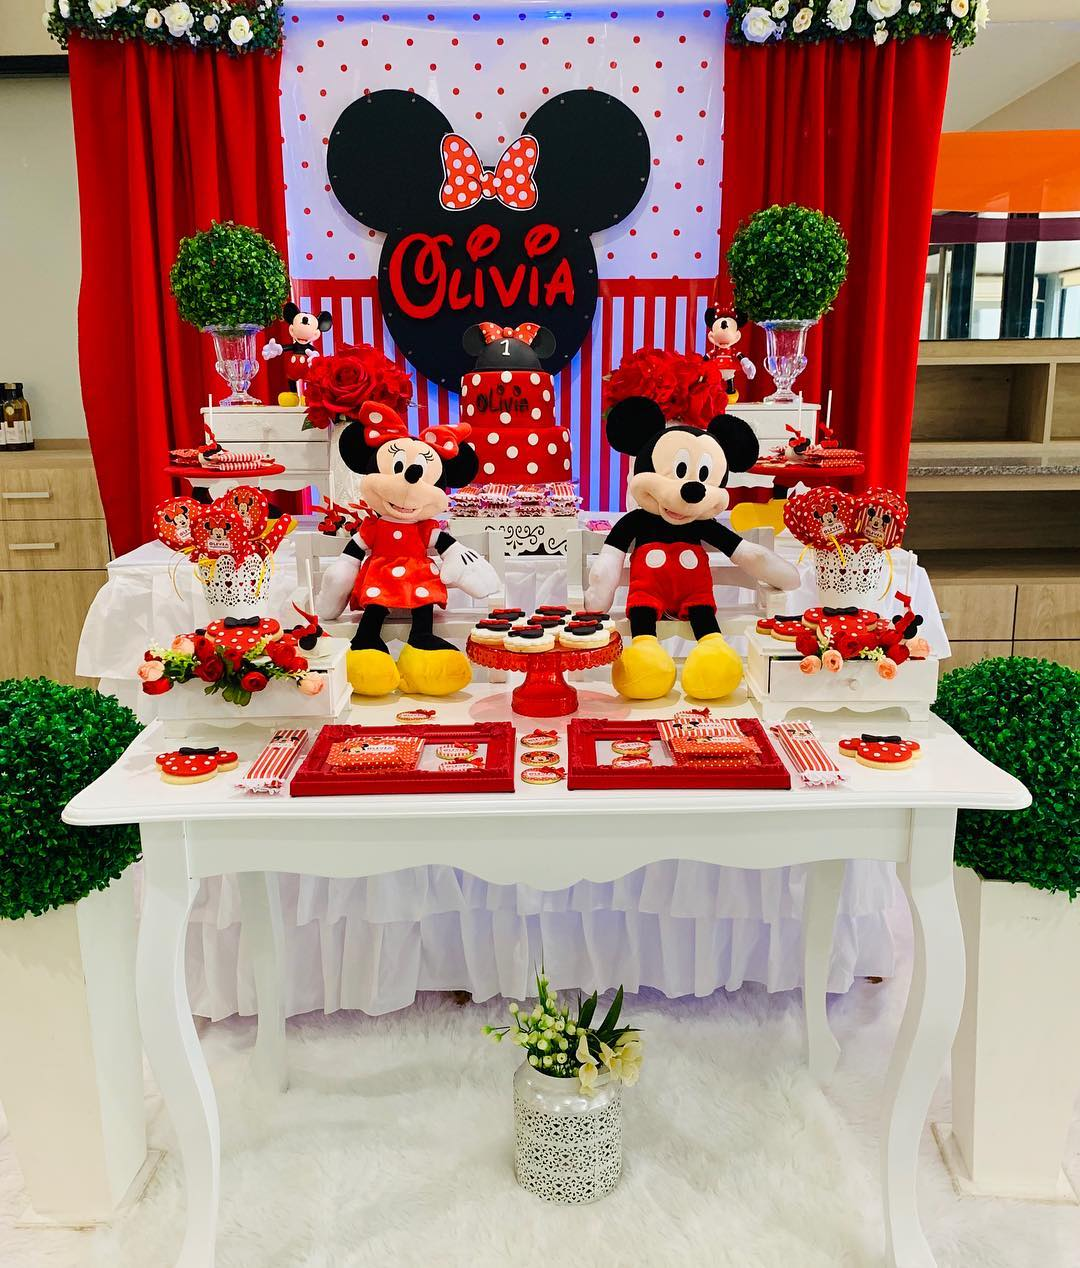 Decoracion mesa de postres minnie mouse rojo